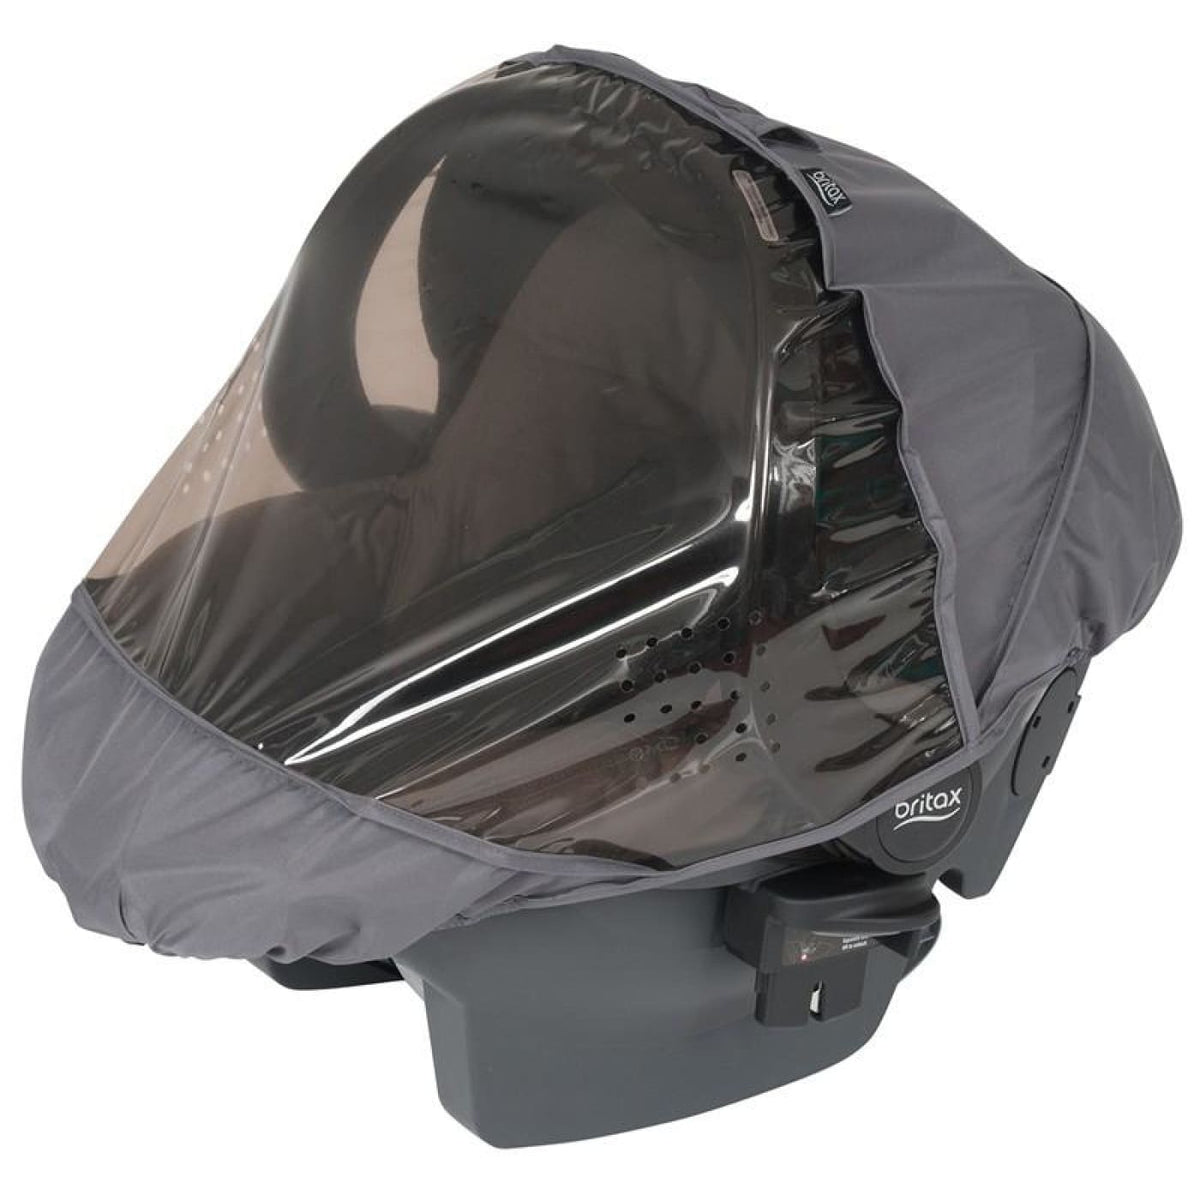 Britax Infant Carrier Raincover for Steelcraft/Unity - CAR SEATS - SUNSHADES/WEATHERSHIELDS